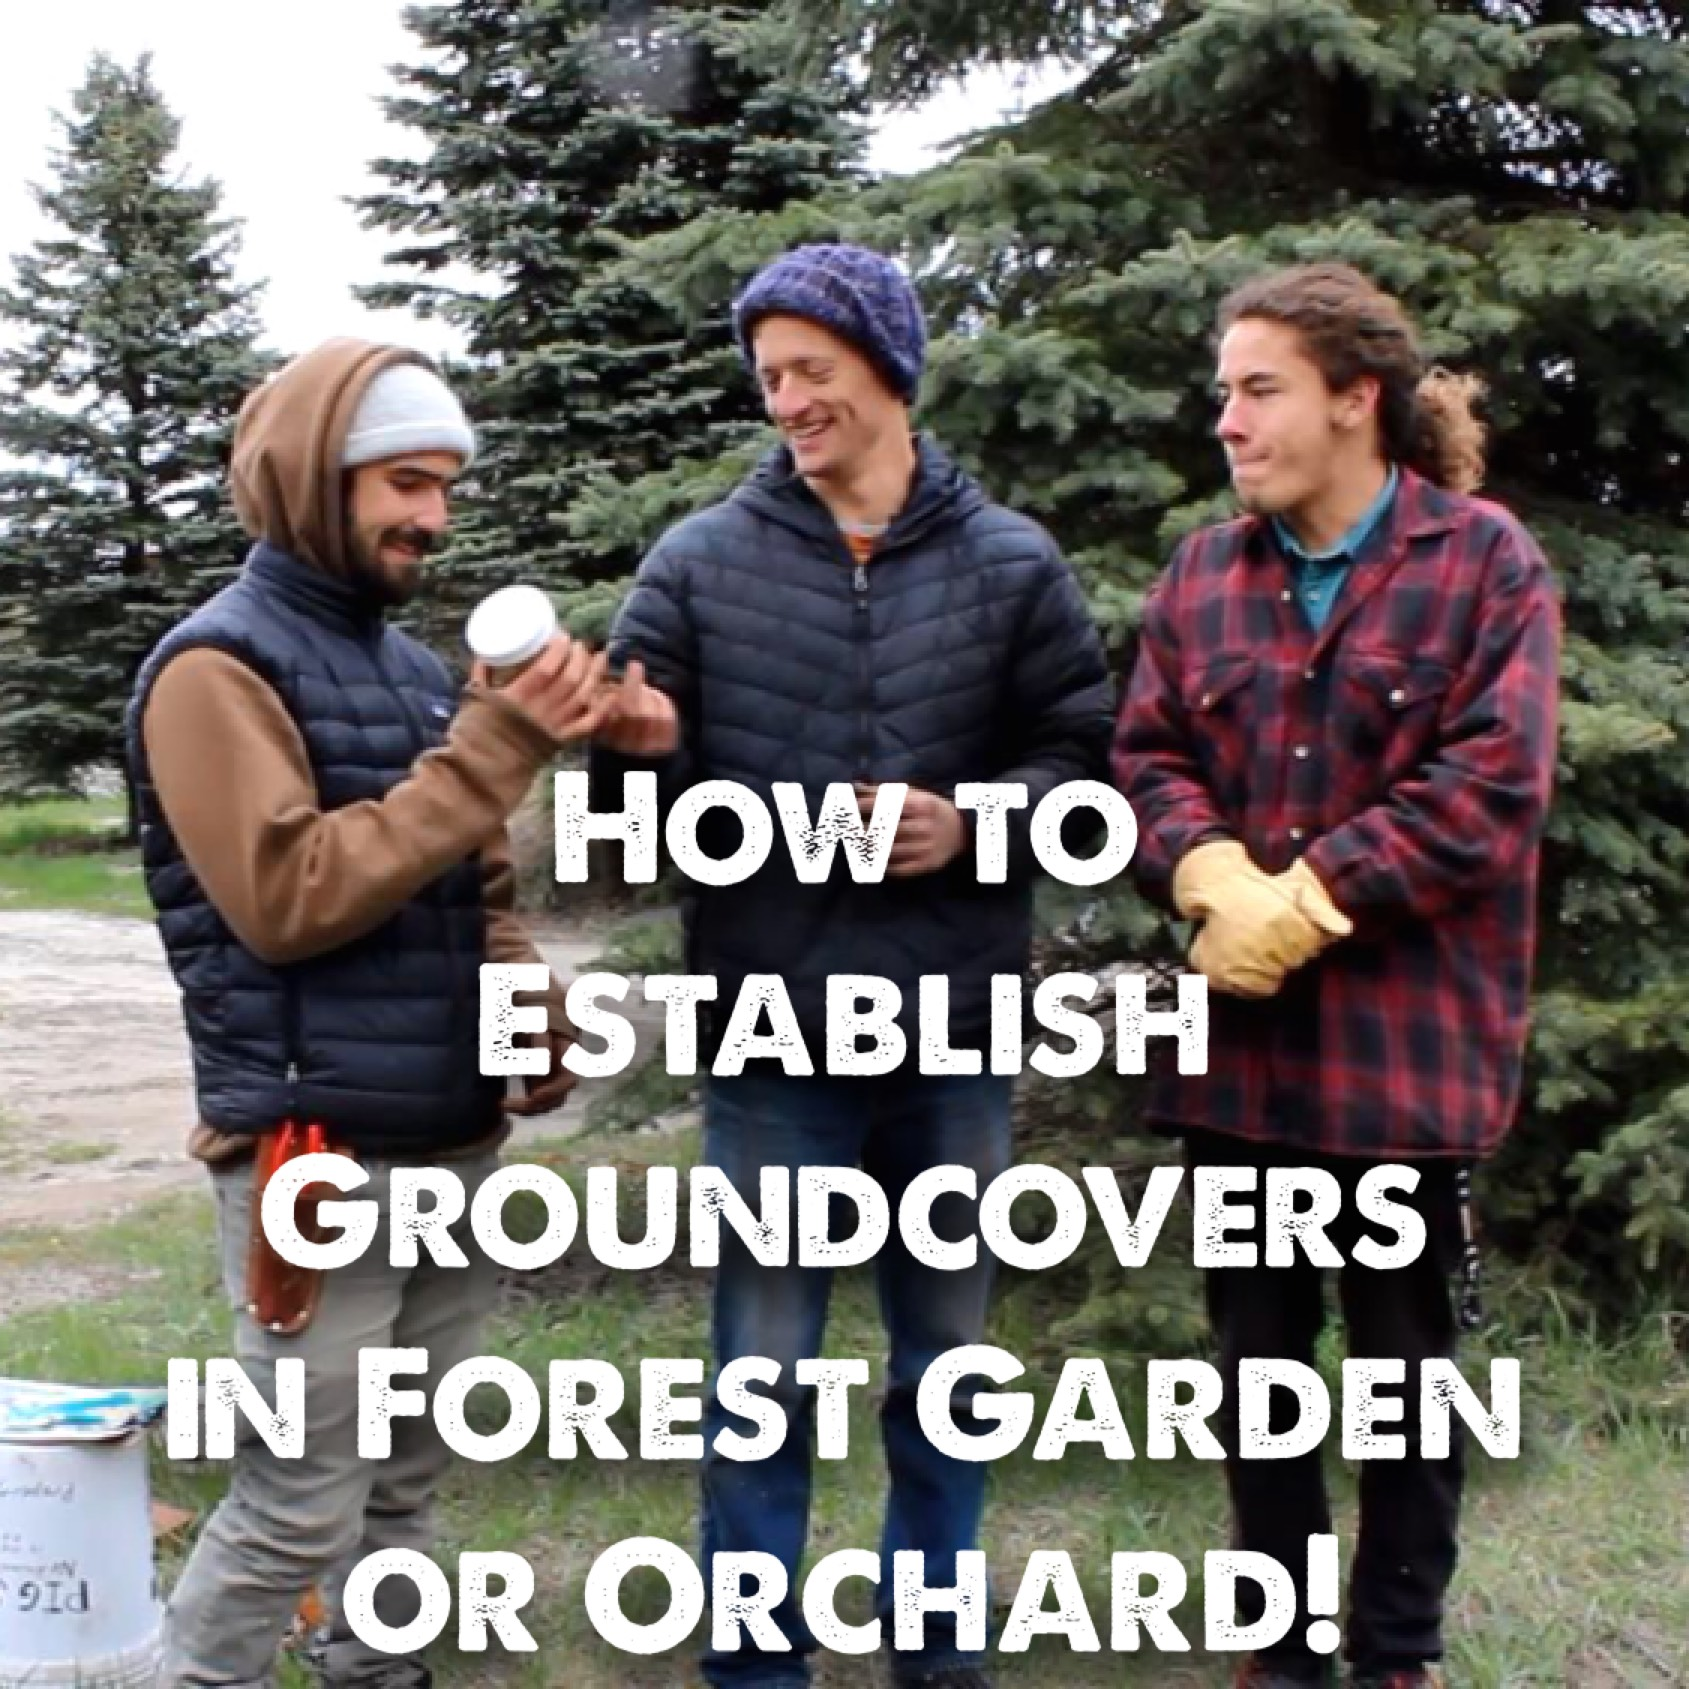 How to Establish Understory/Groundcover Plants in your Orchard or Forest Garden [Video]